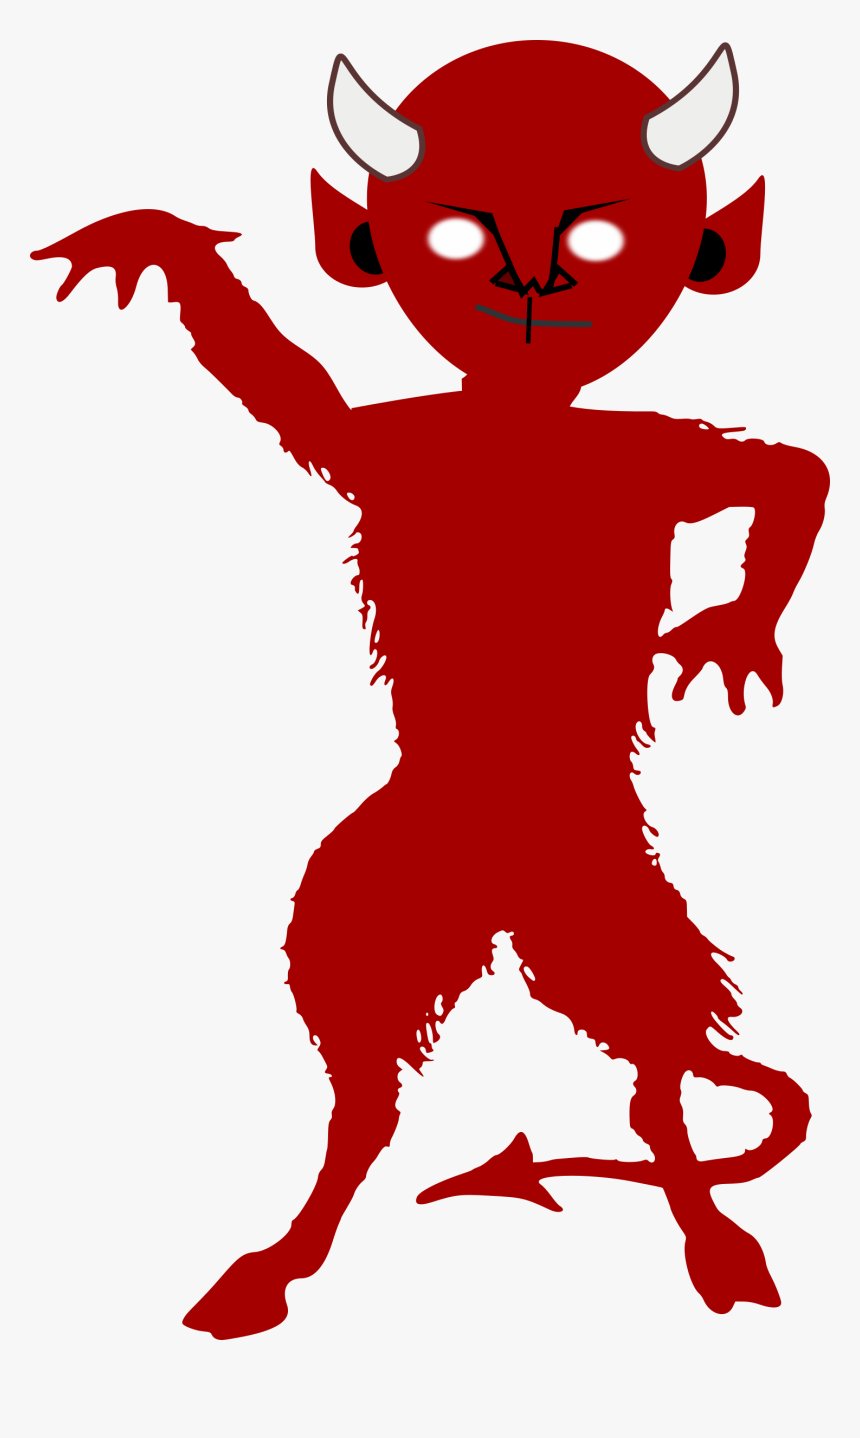 Small To Medium Sized Cats,organ,carnivoran - Evil Demon Silhouette, HD Png Download, Free Download